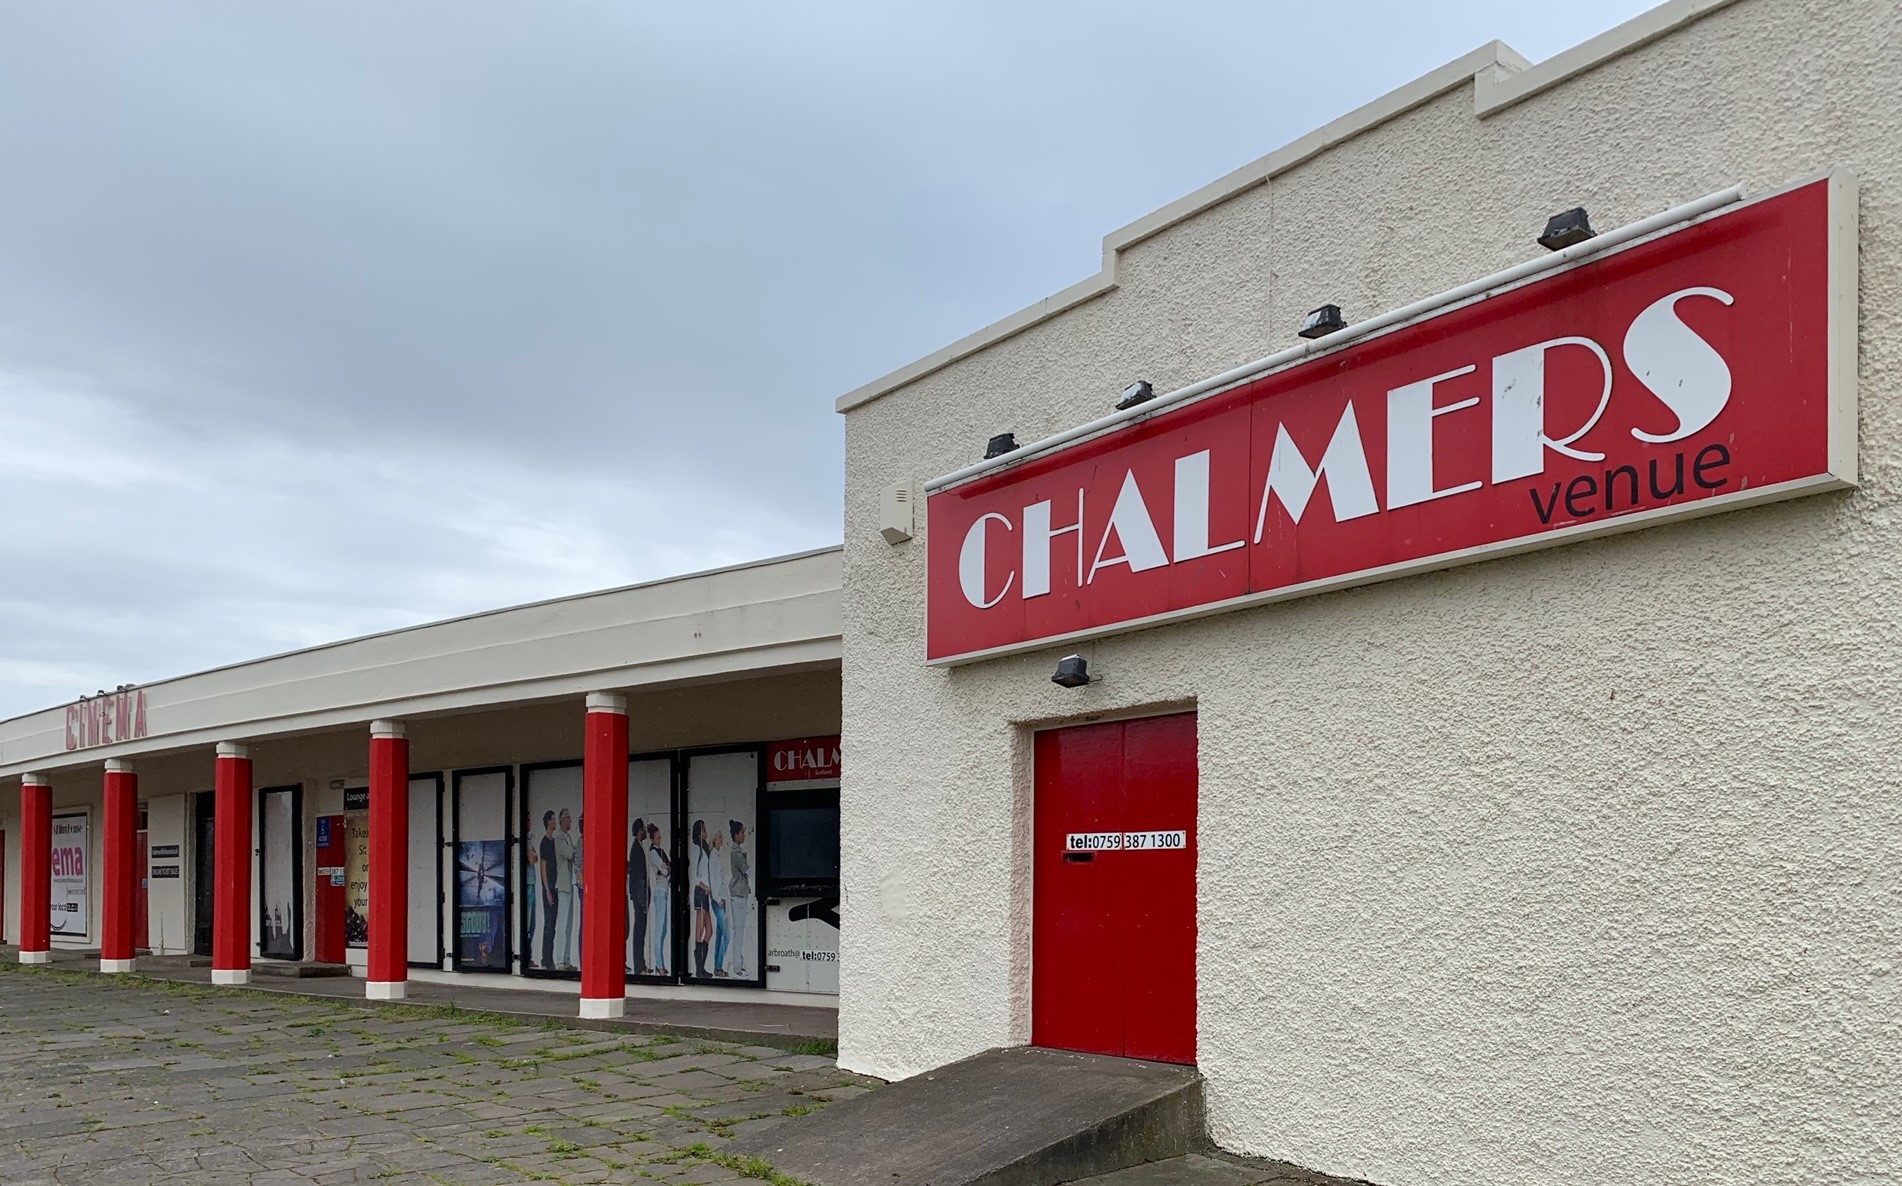 Chalmers cinema, Arbroath.